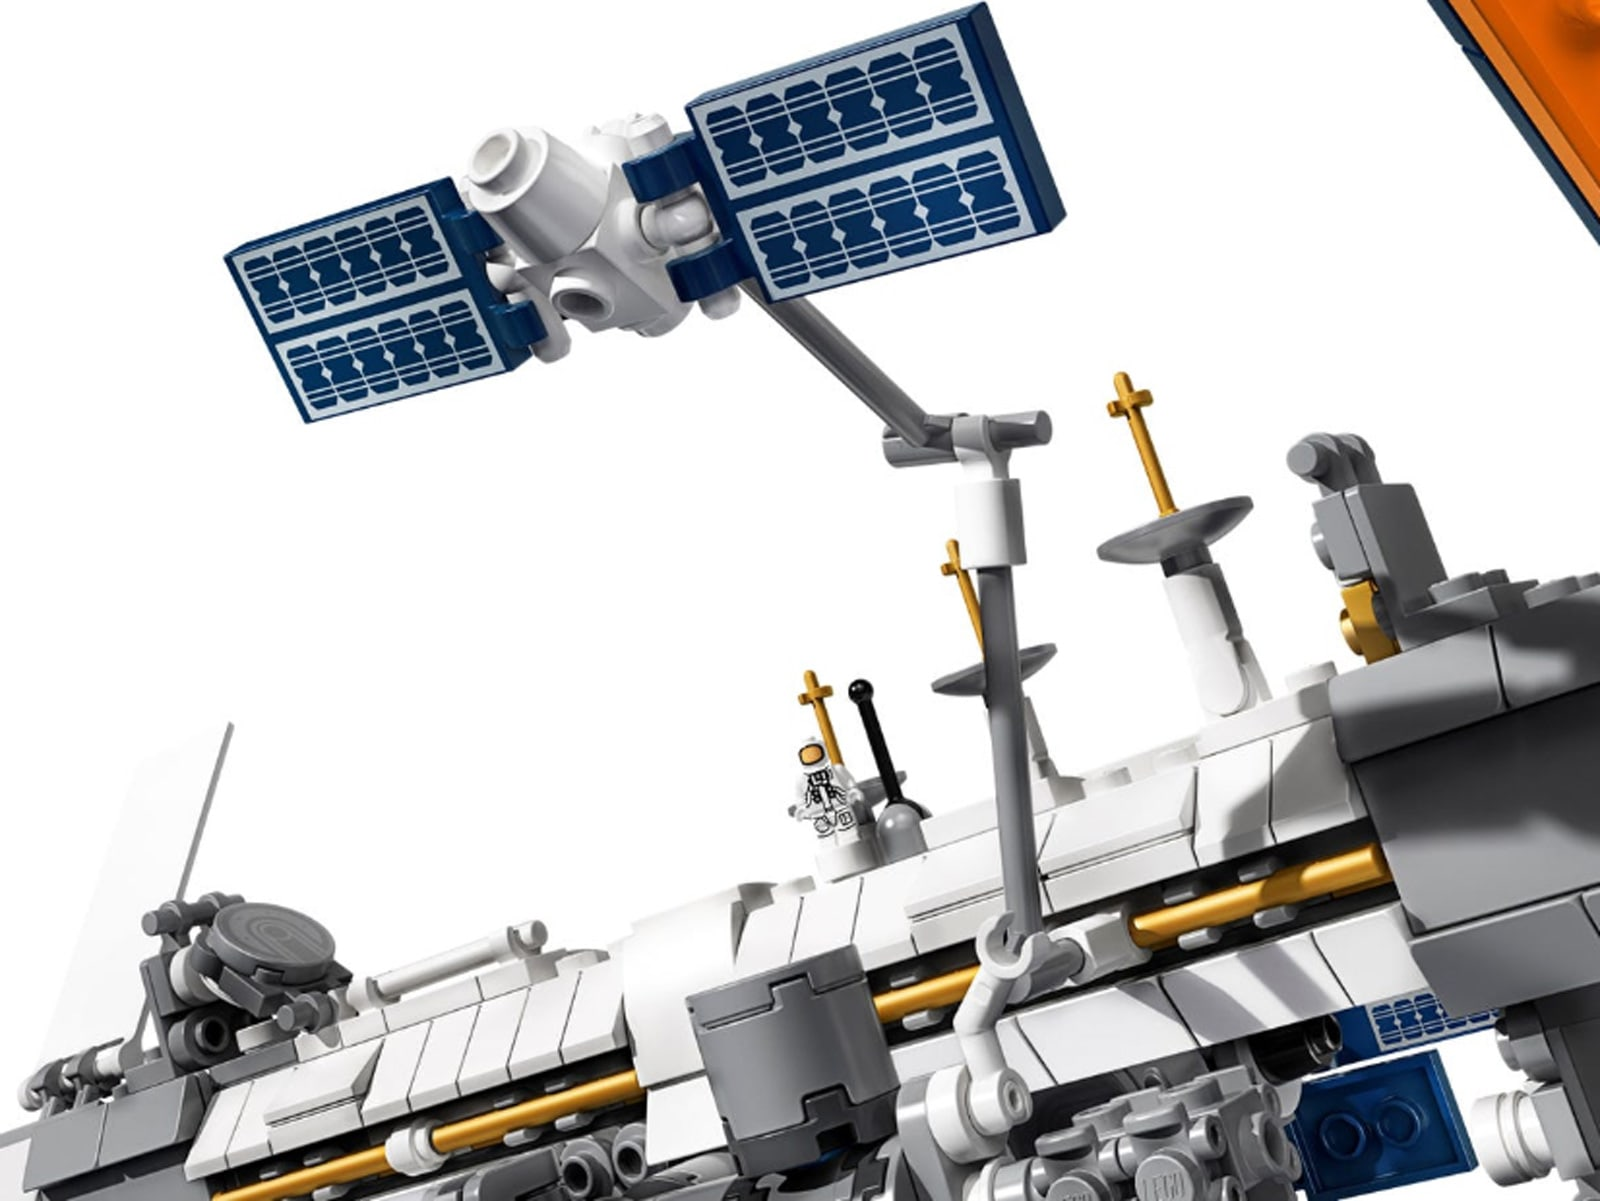 Lego ISS inline